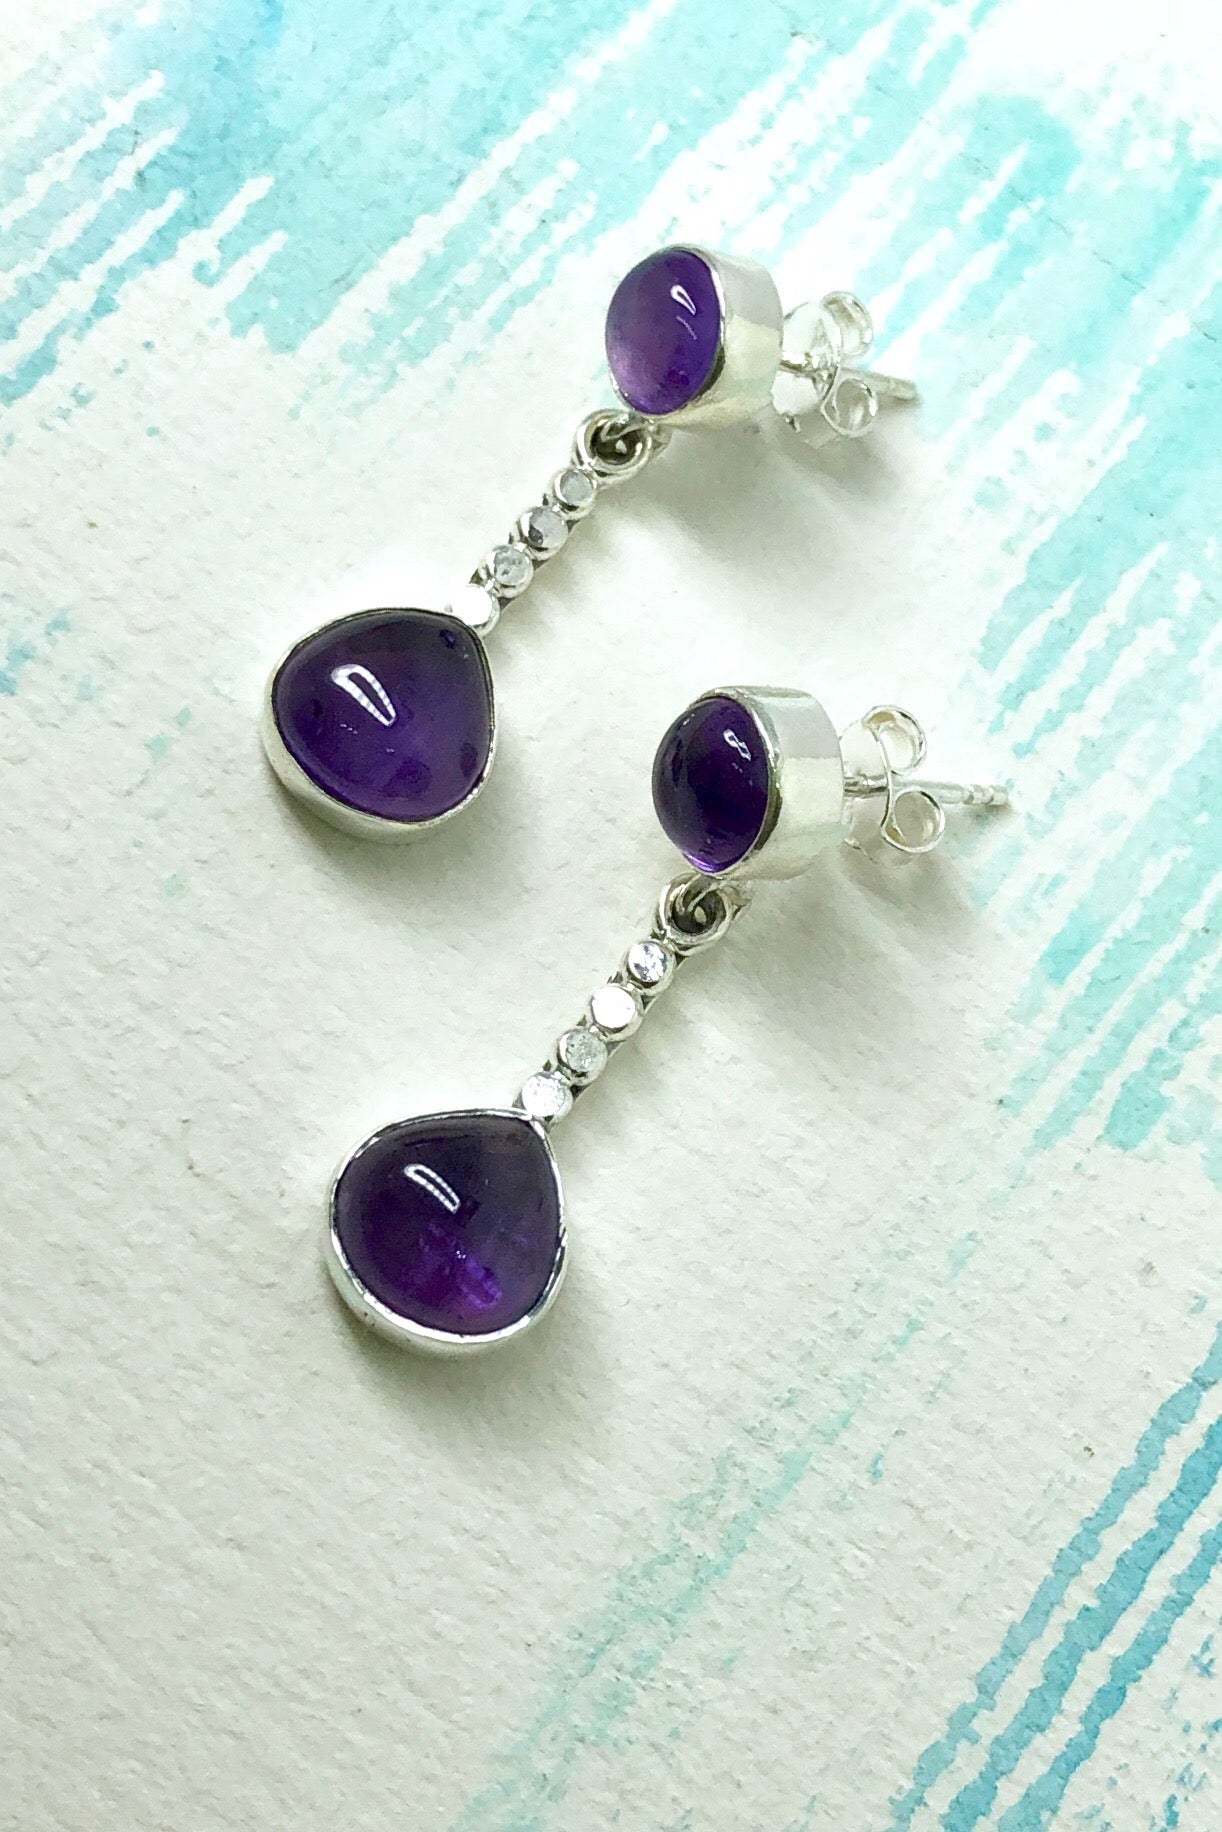 Oracle Earrings Dewdrop in Amethyst and 925 Silver